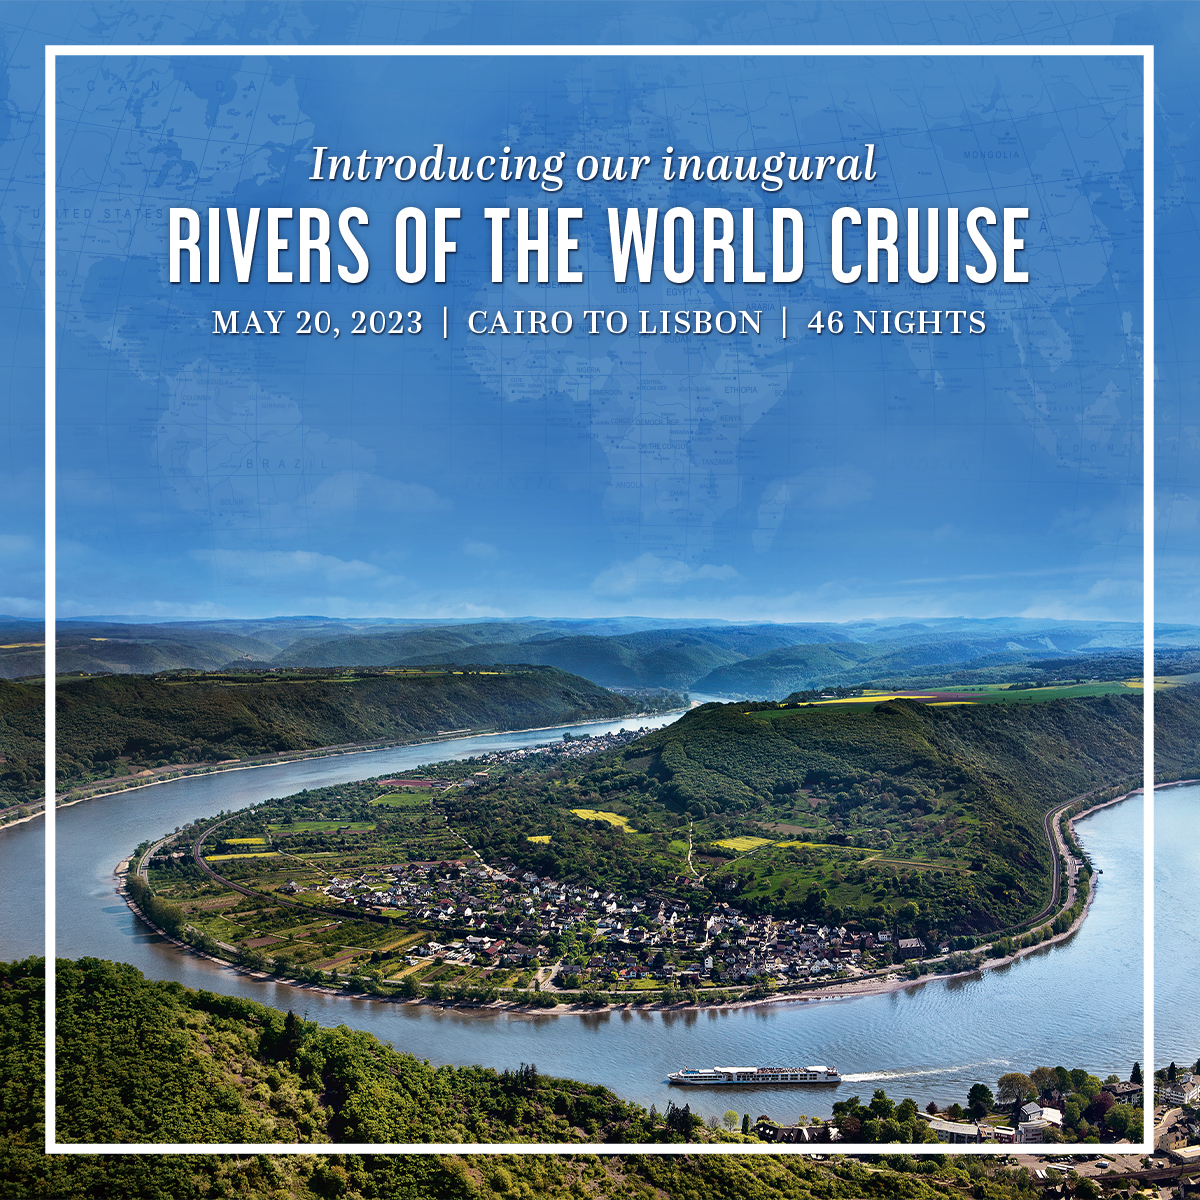 10% off Uniworld's Inaugural 2023 Rivers of the World Cruise!